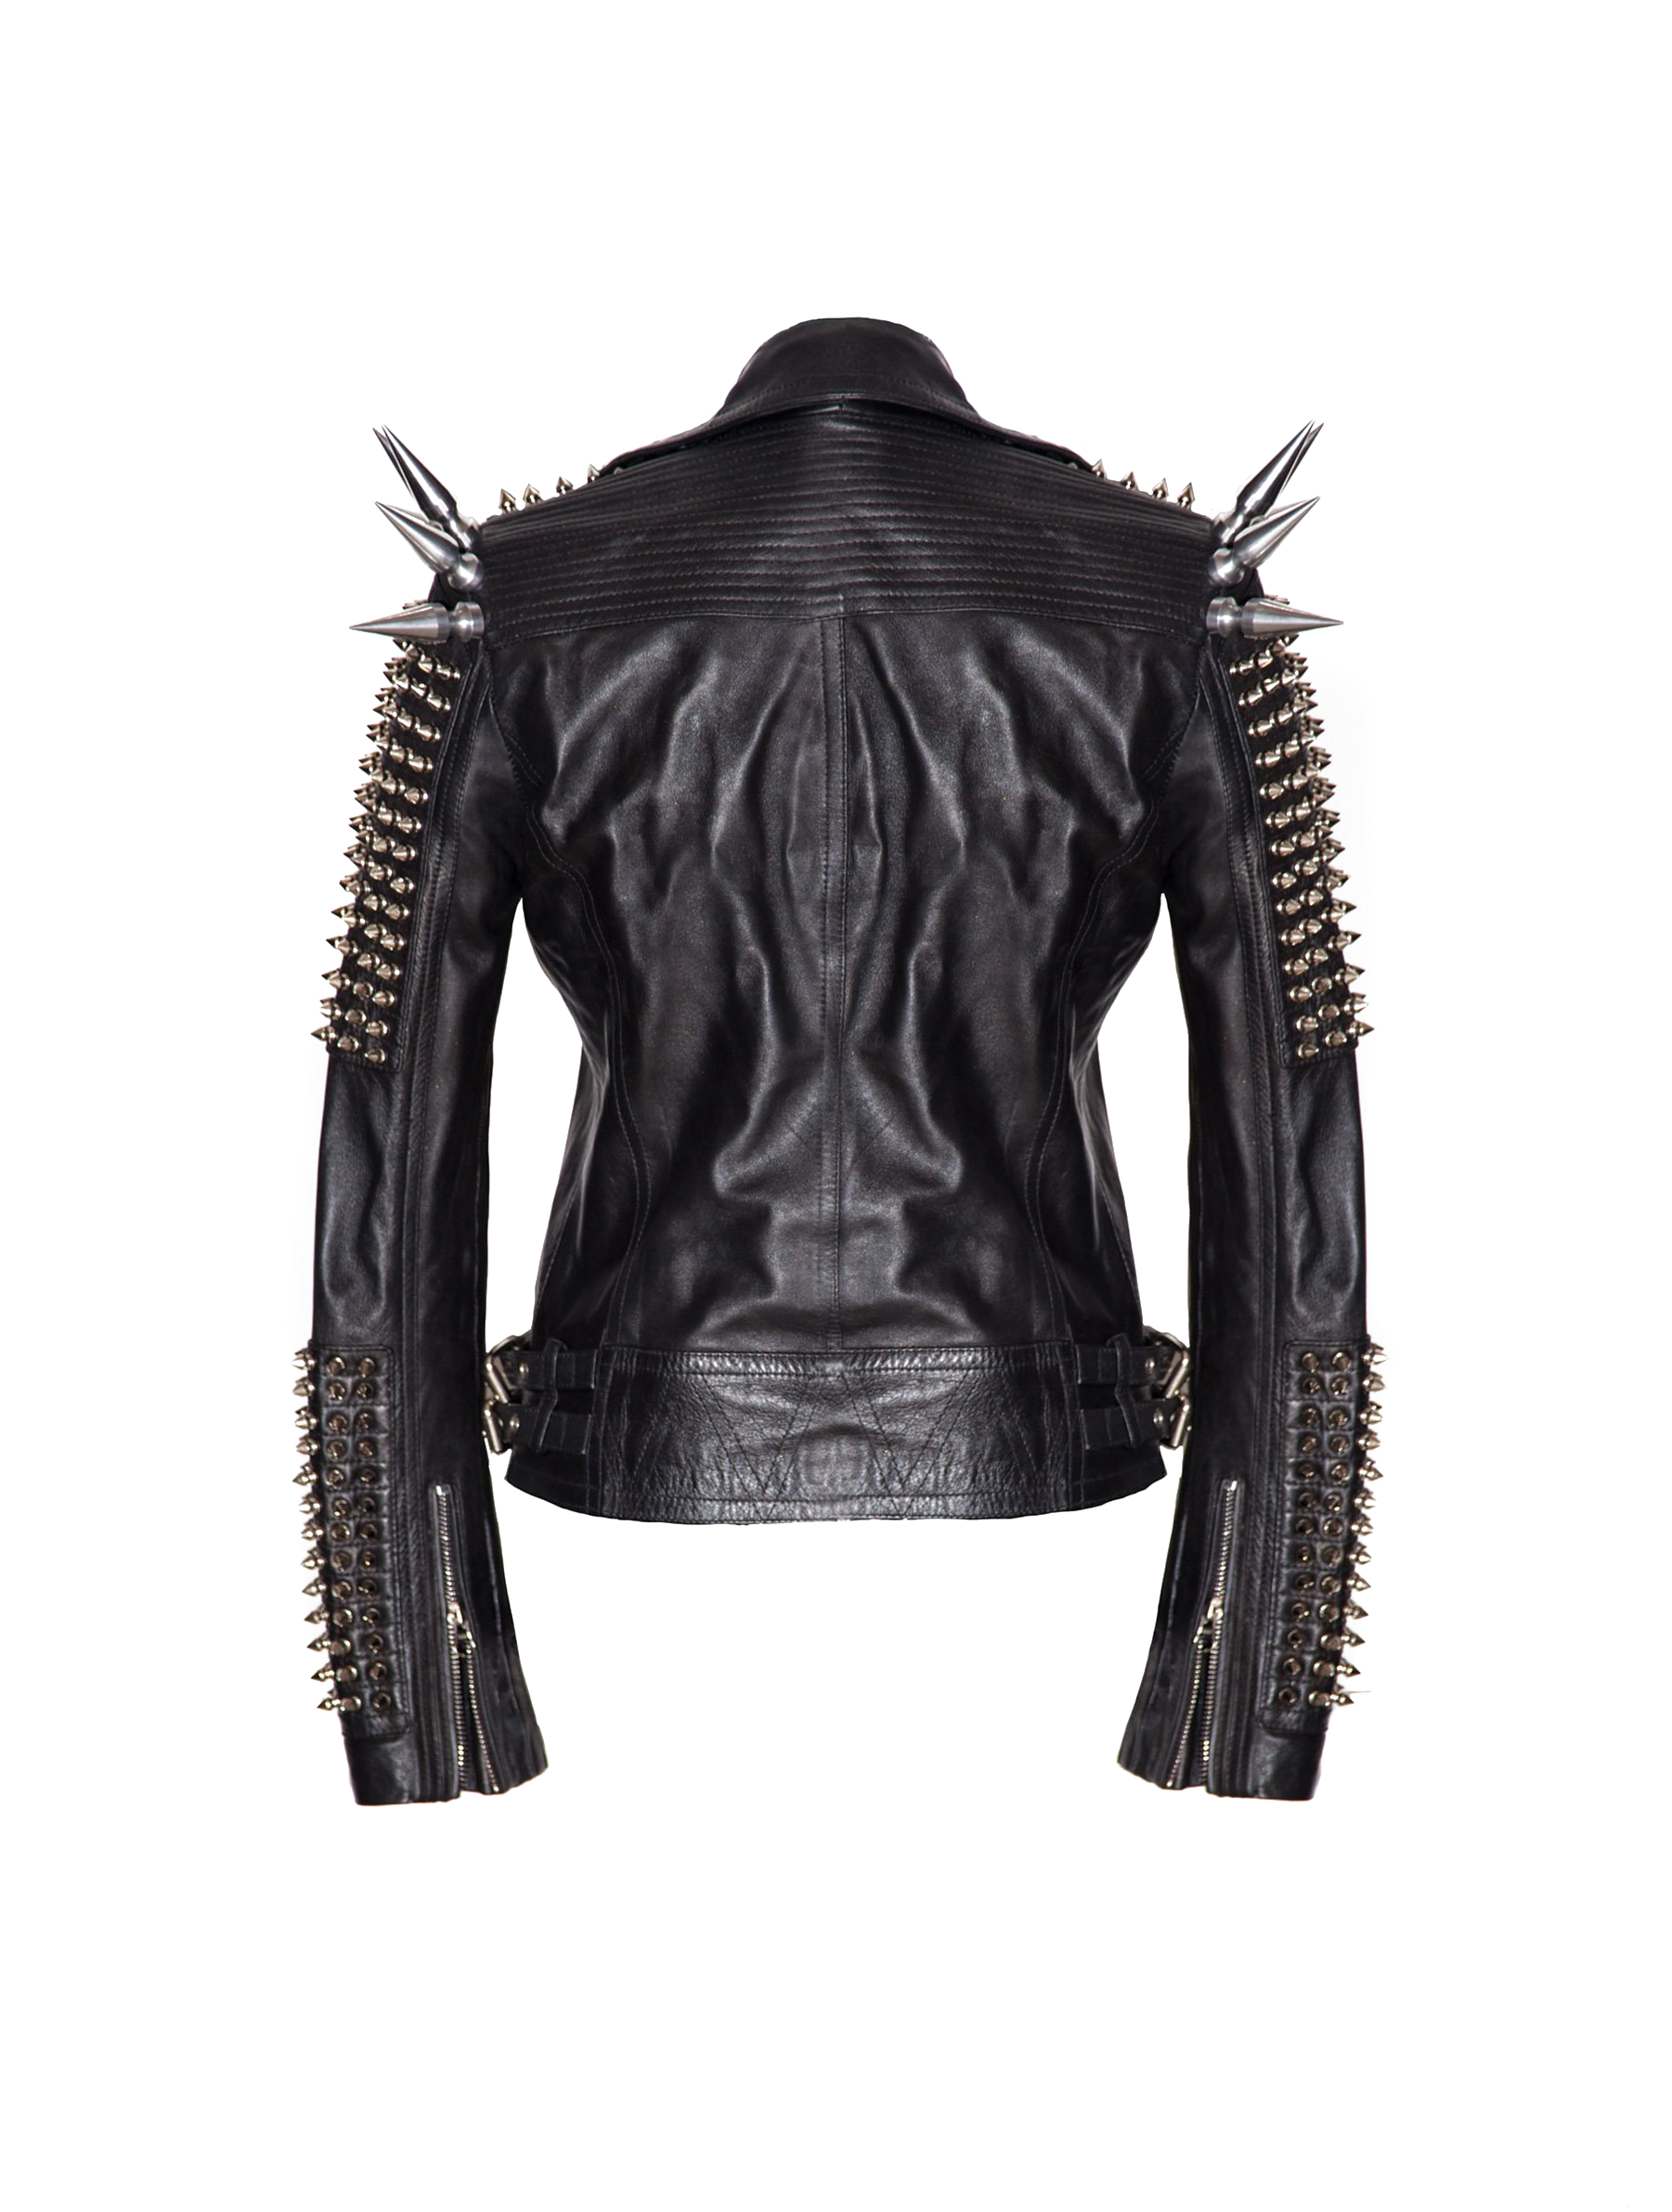 Leather clothing png download. Jacket clipart motorcycle jacket